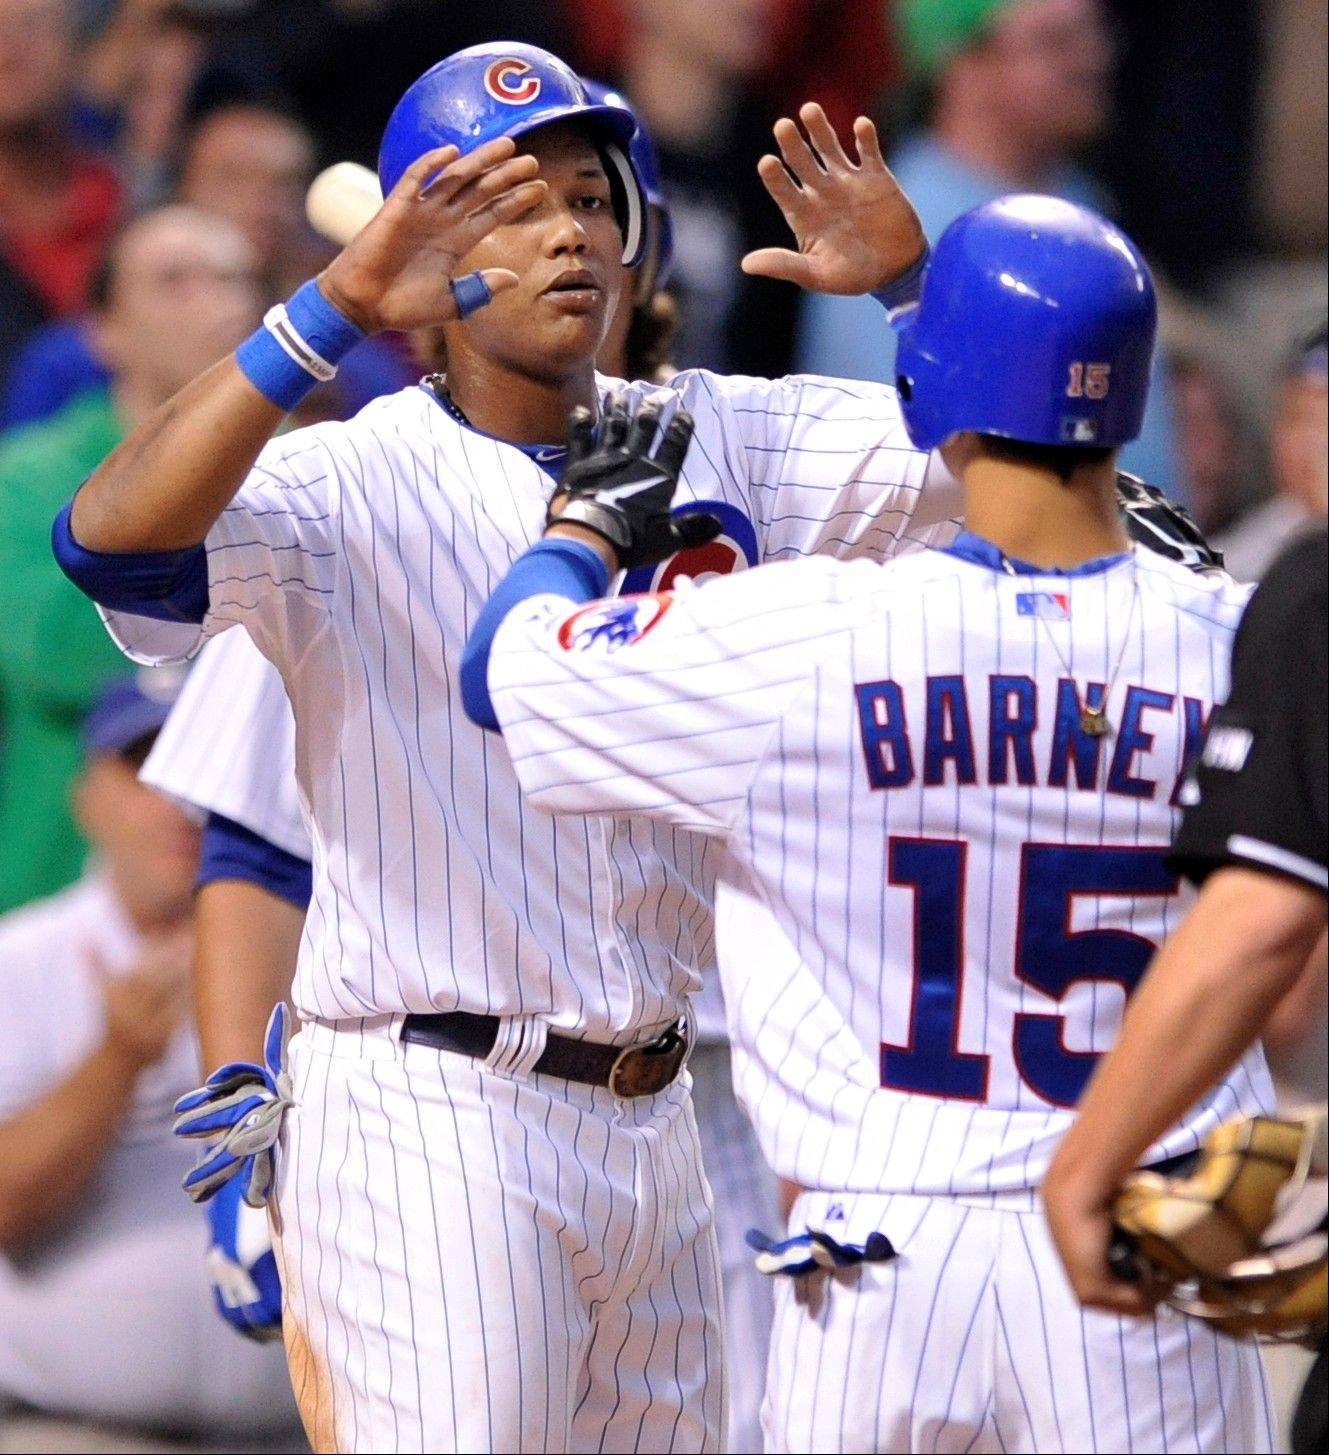 The Cubs� Darwin Barney celebrates with teammate Starlin Castro after hitting a 2-run home run against the Houston Astros in the second inning Monday night. The Cubs won 7-1.